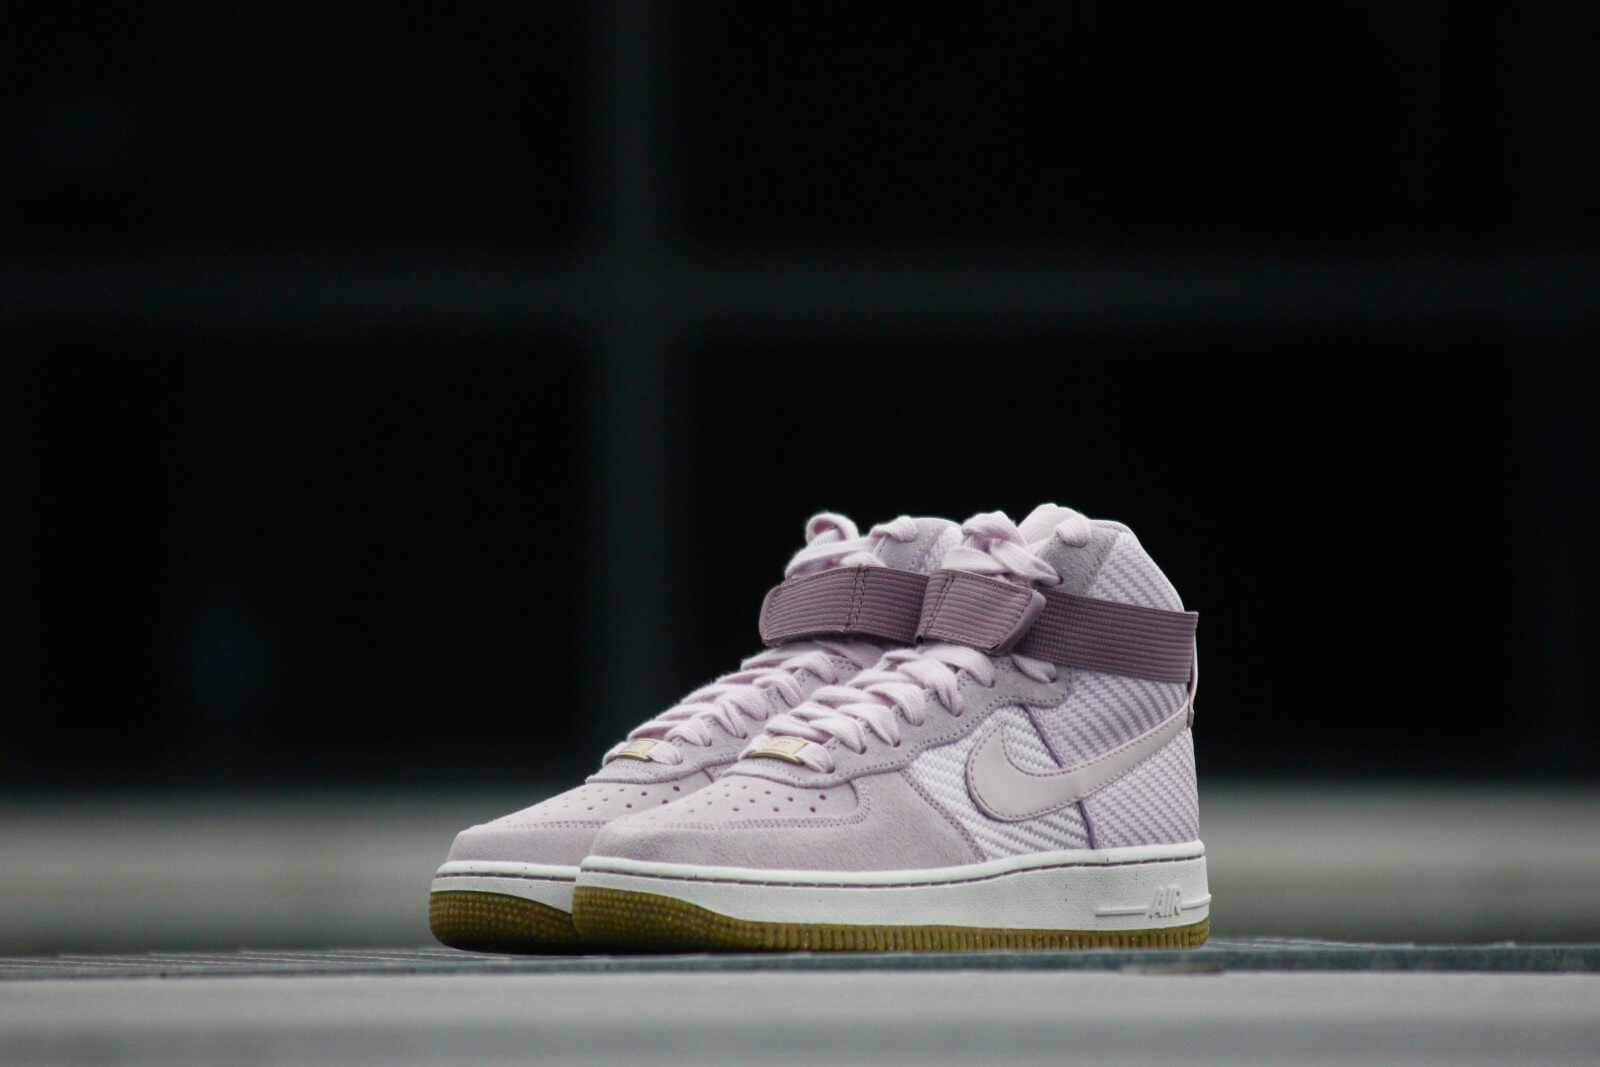 Nike WMNS Air Force 1 High PRM Bleached Lilac 654440 500